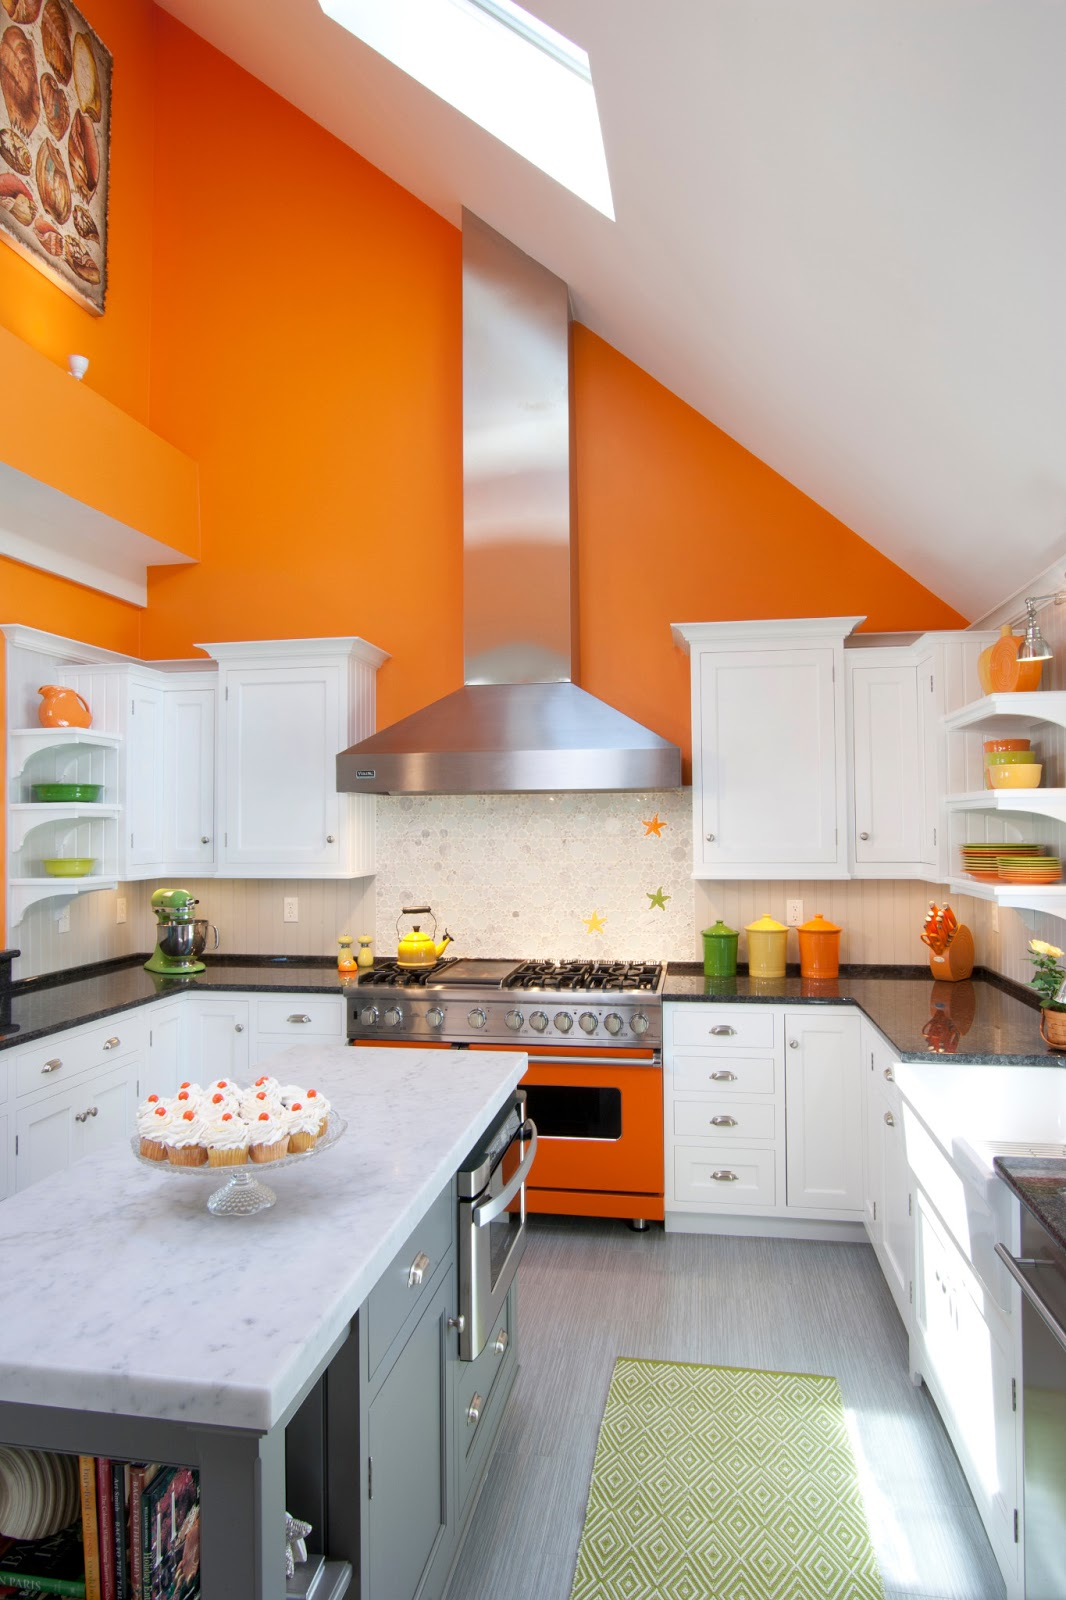 Orange Kitchens Covenant Kitchens Baths Inc Bringing The Sunshine In